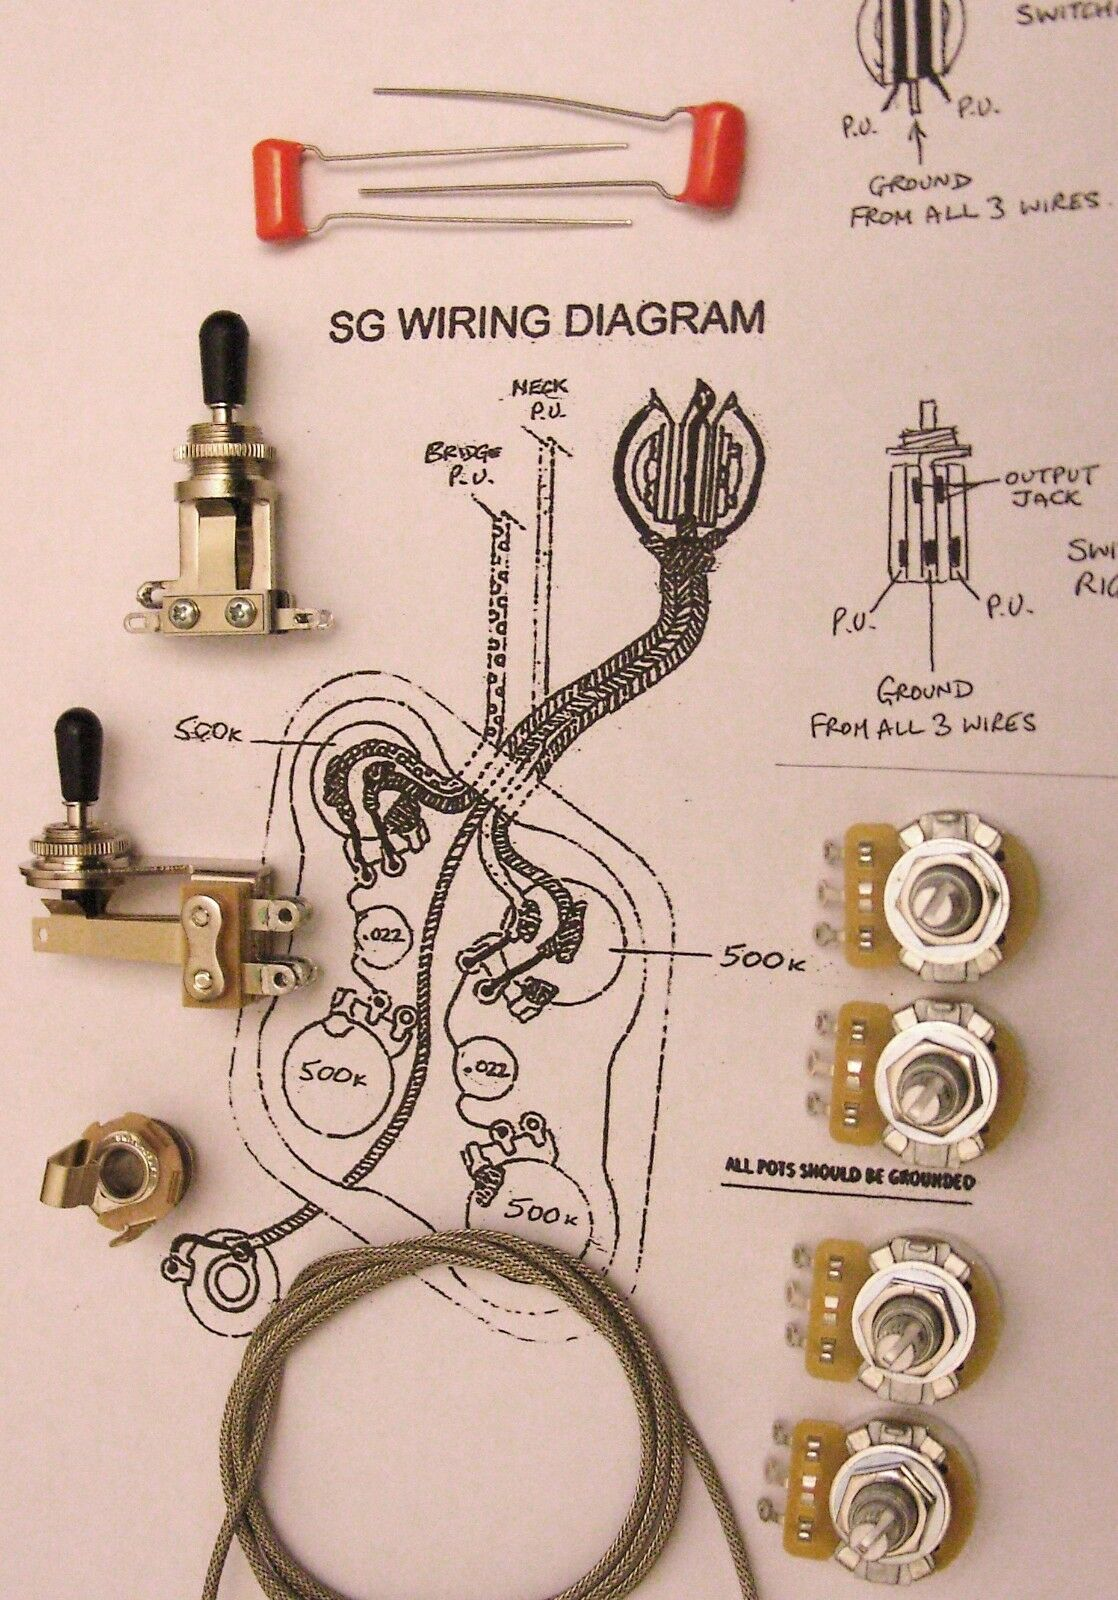 Upgrade Wiring Kit for SG - Switchcraft, CTS,  O drop etc.